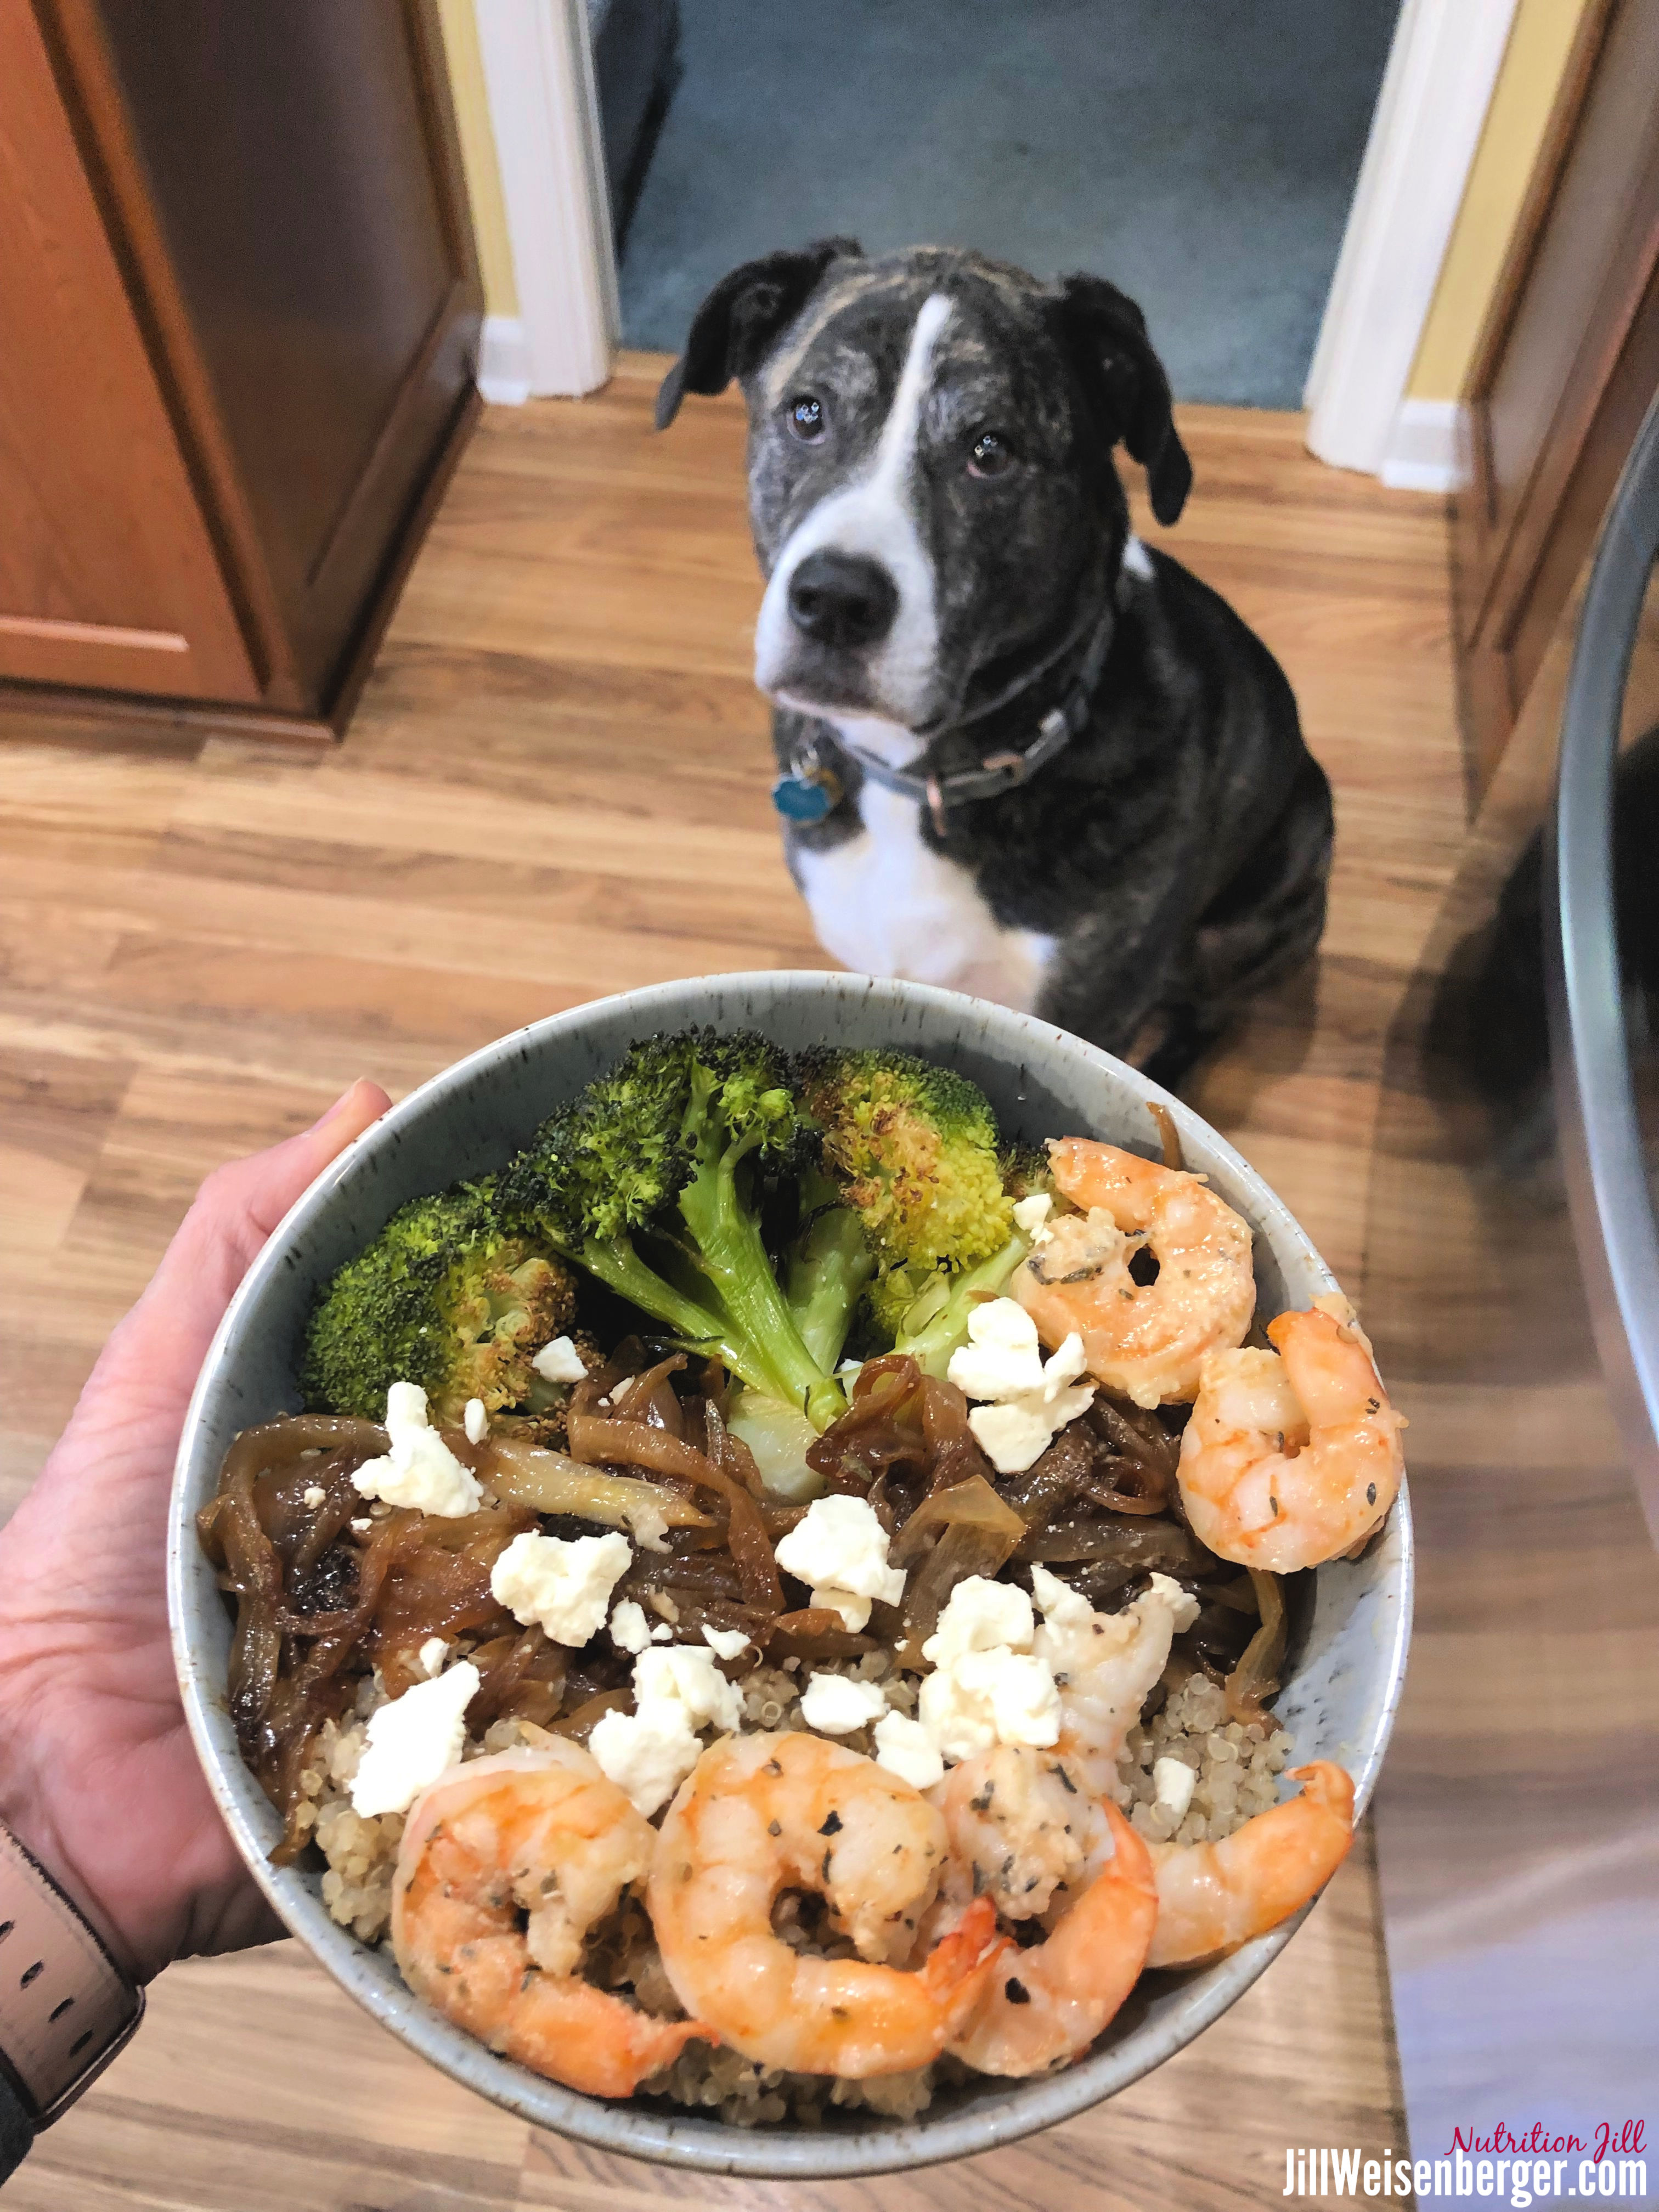 shrimp meal bowl with dog overlooking